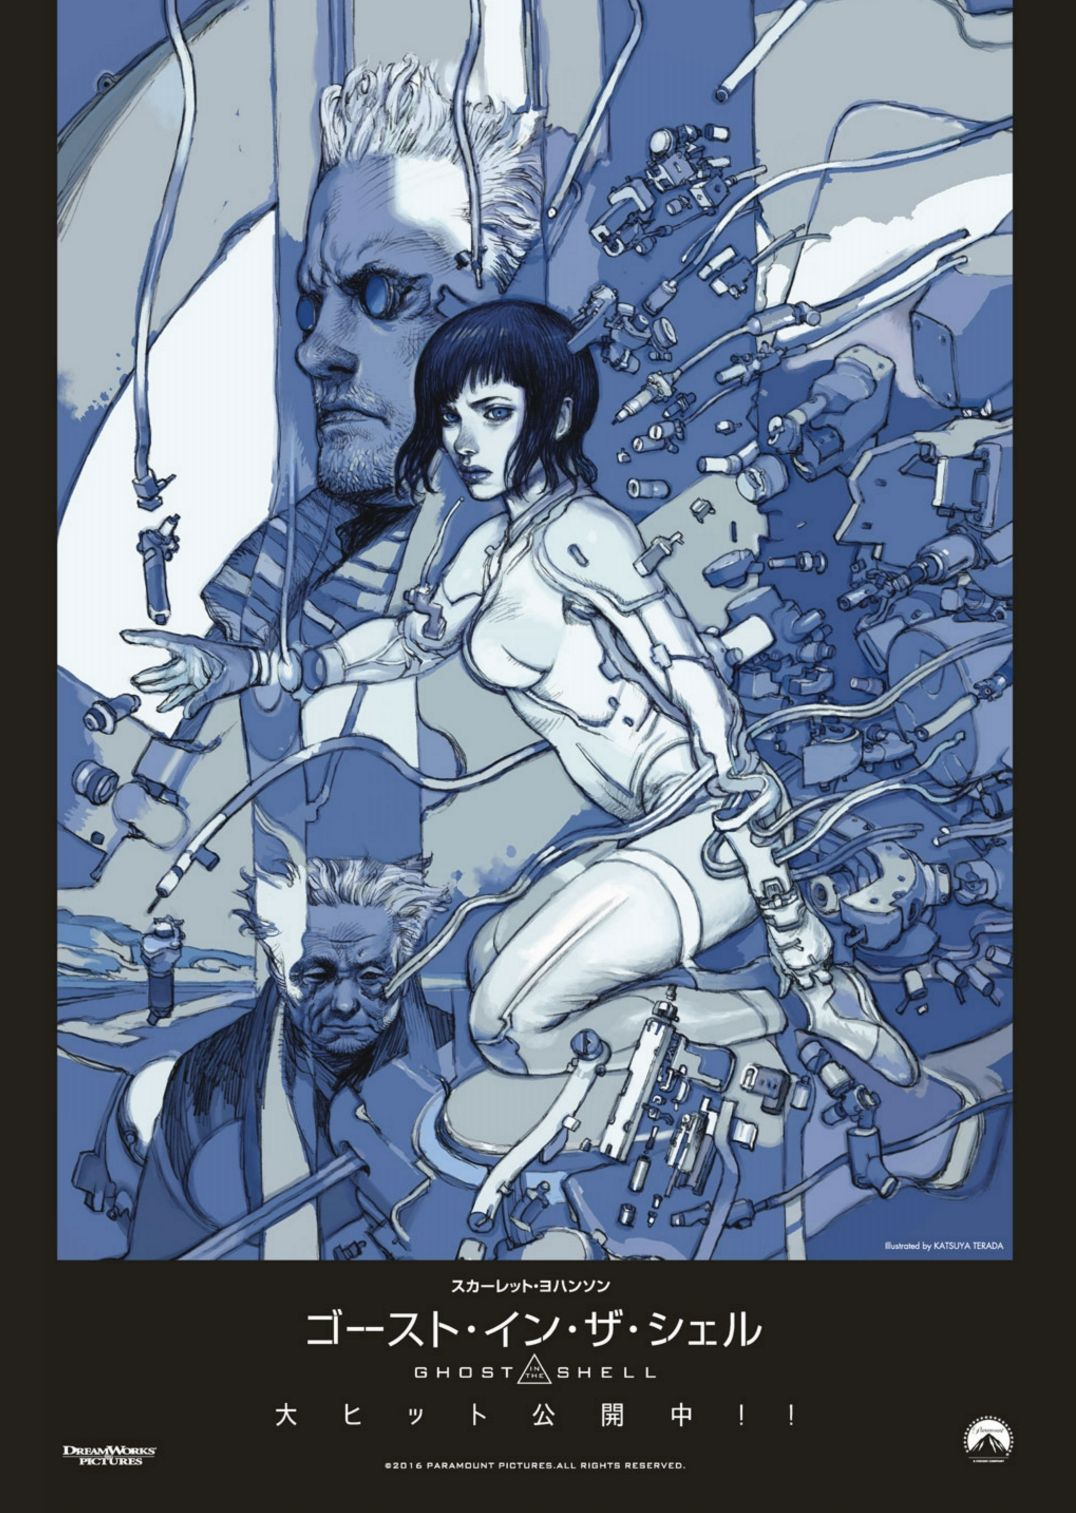 Ghost In The Shell Poster By Katsuya Terada Ghost In The Shell Know Your Meme